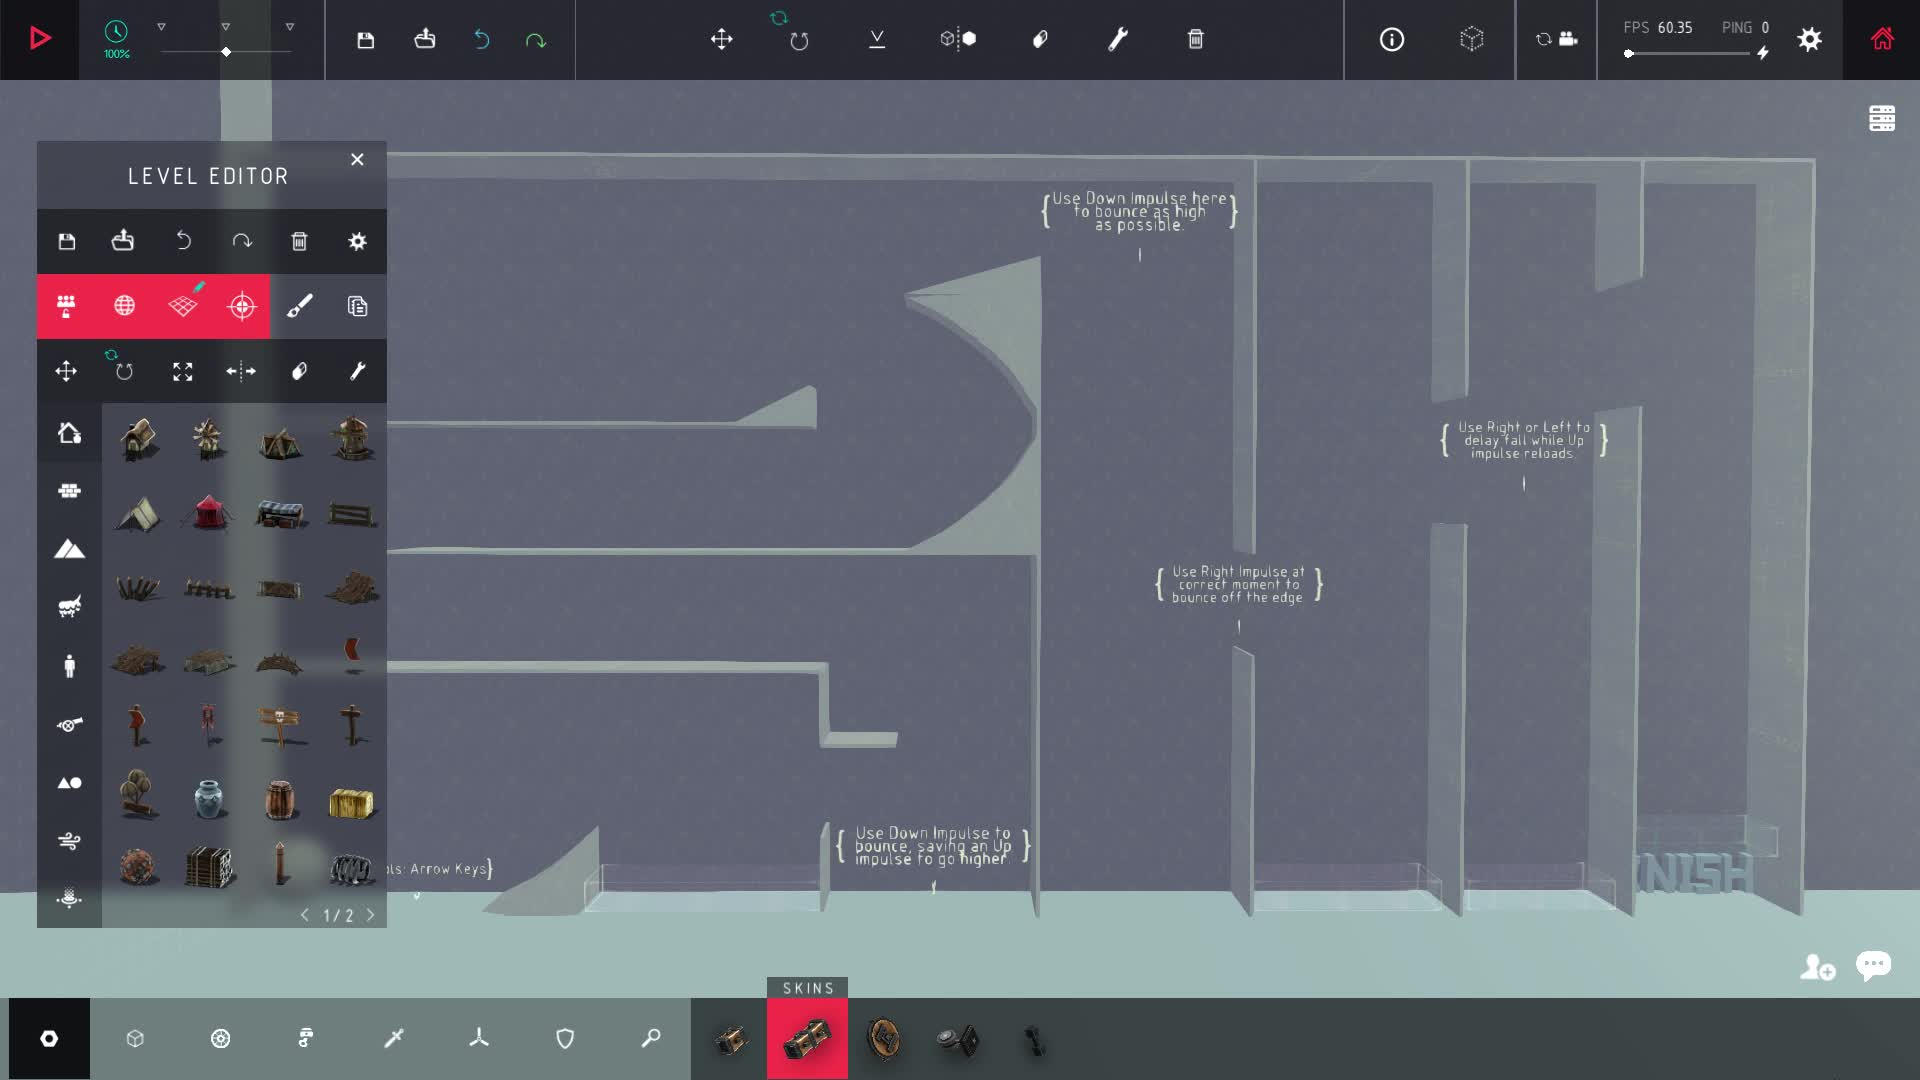 Level Editor Gifs Search | Search & Share on Homdor